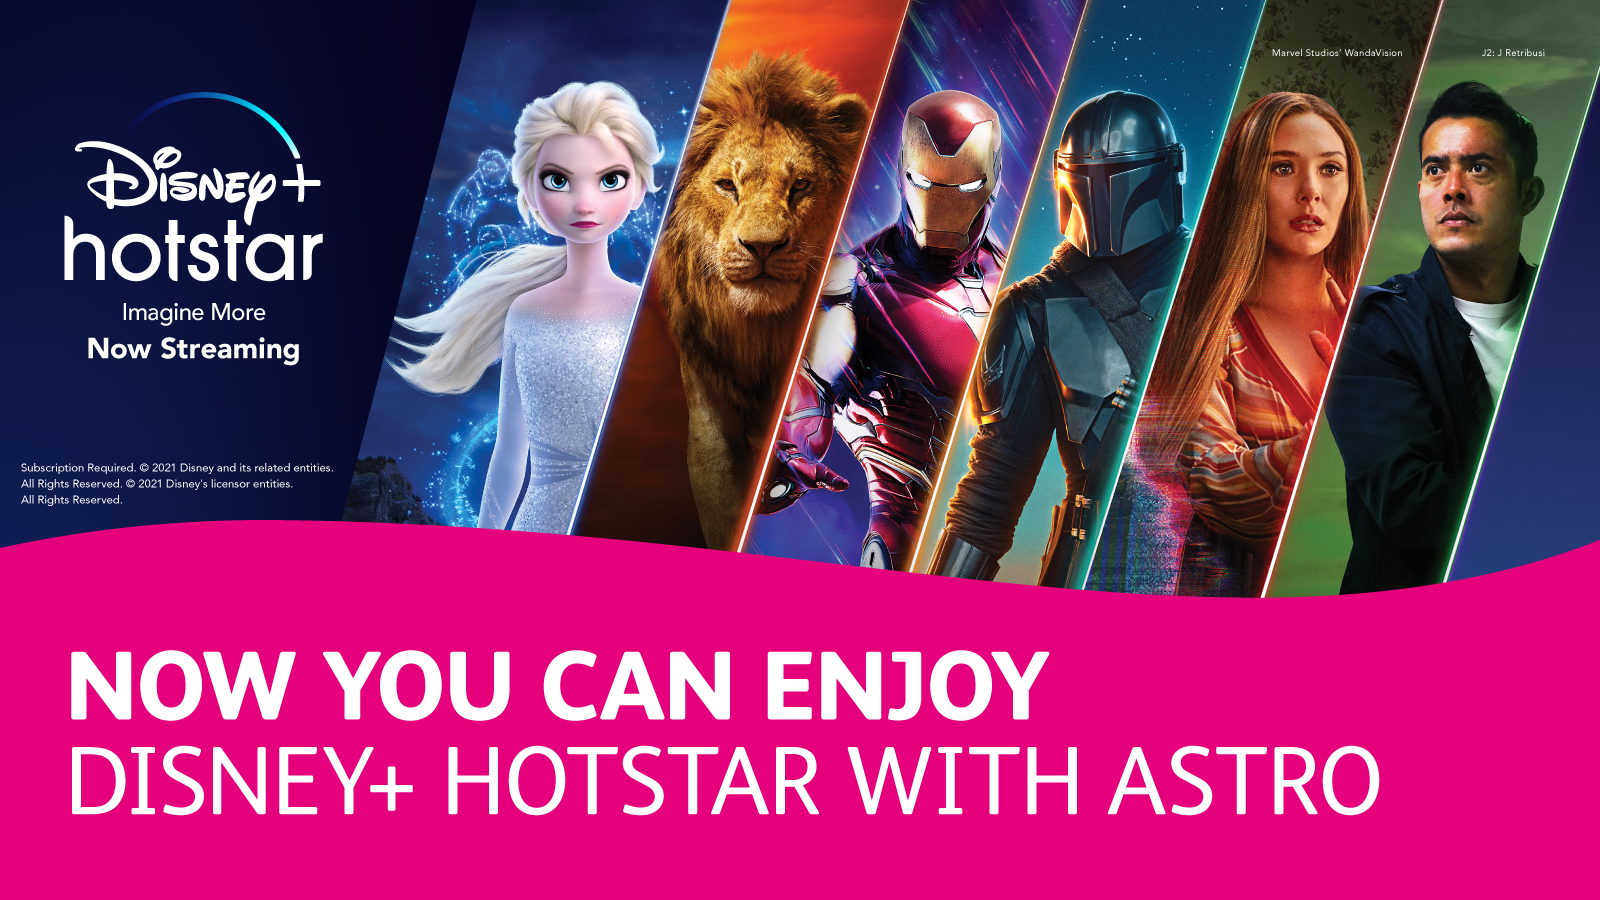 Enjoy Disney+ Hotstar with Astro Movies Pack. Subscribe Now!